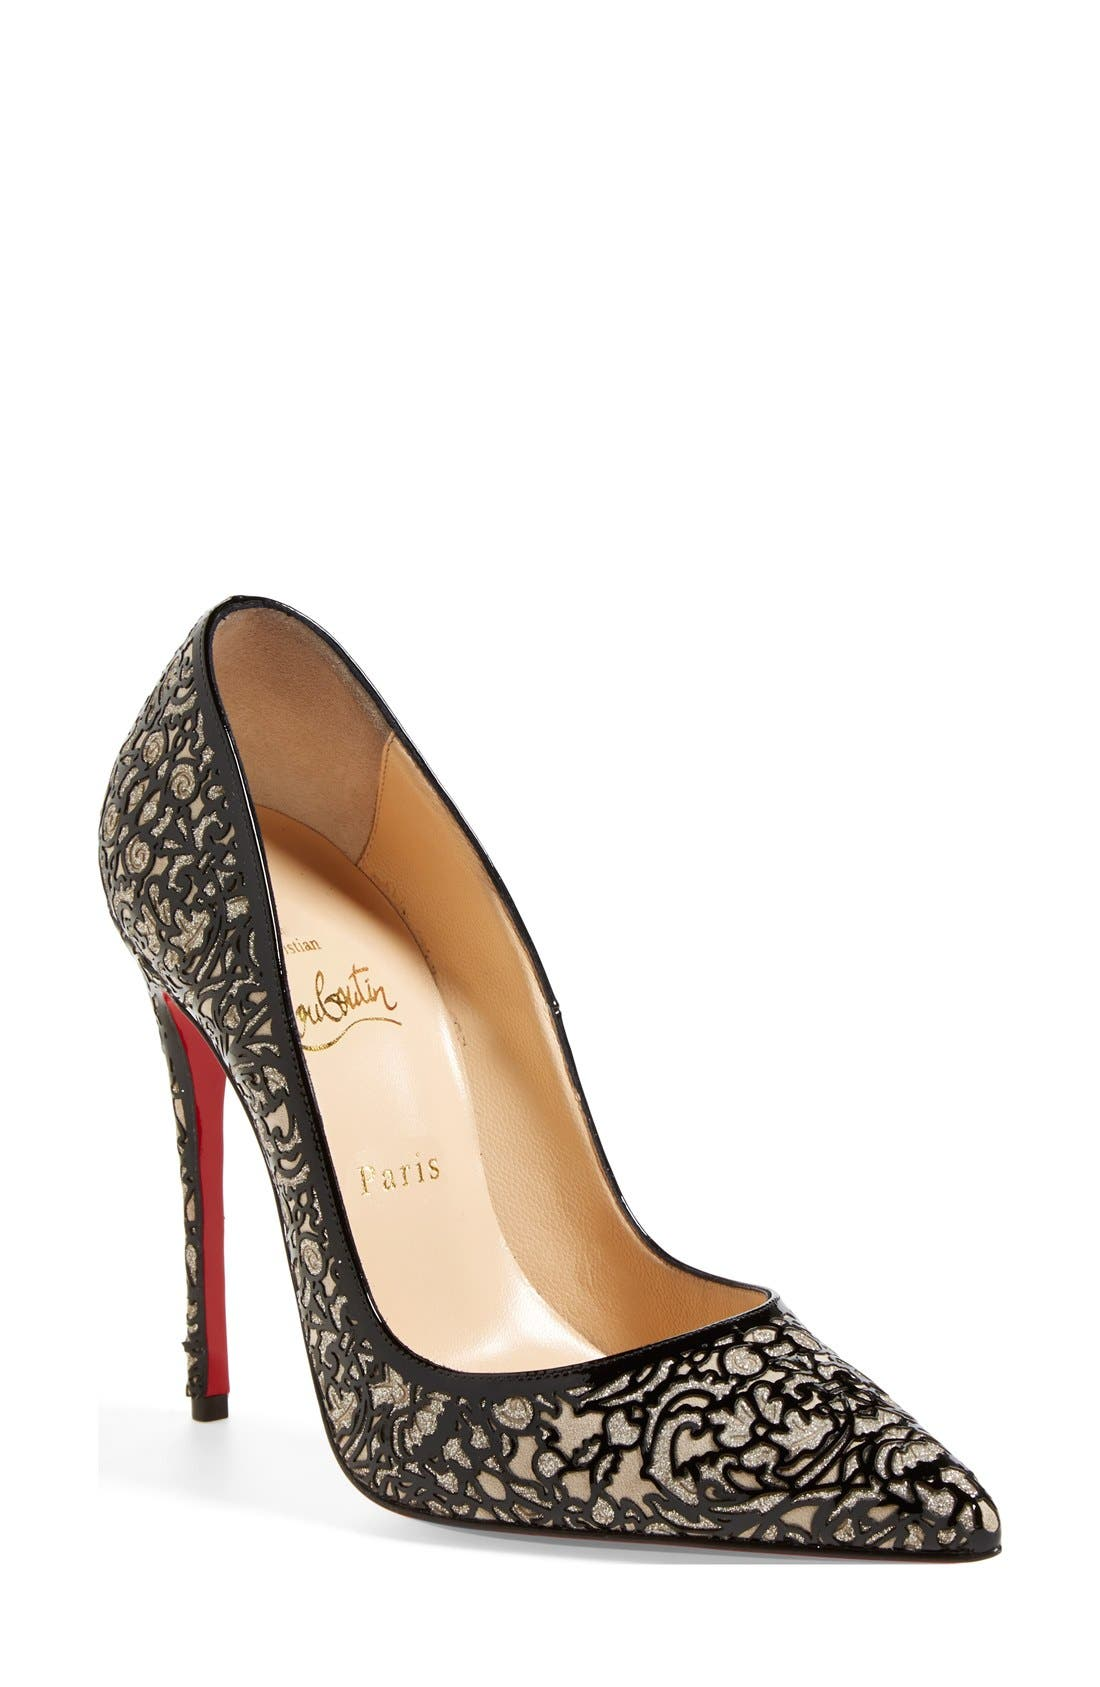 Main Image - Christian Louboutin 'So Pretty' Pointy Toe Pump